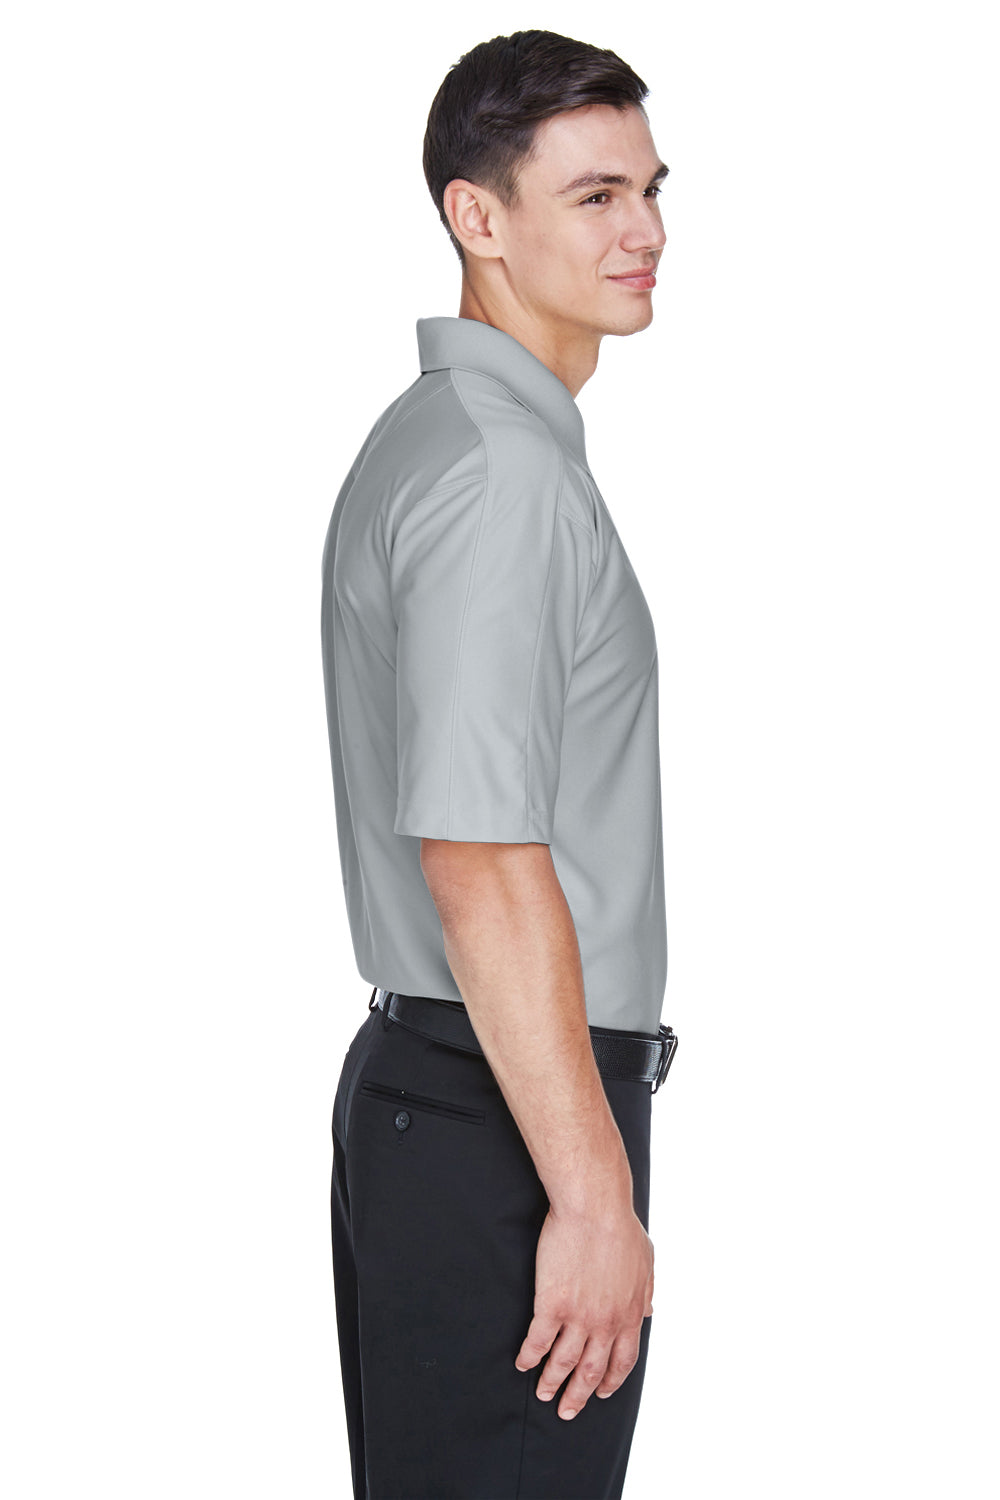 UltraClub 8415 Mens Cool & Dry Elite Performance Moisture Wicking Short Sleeve Polo Shirt Grey Side